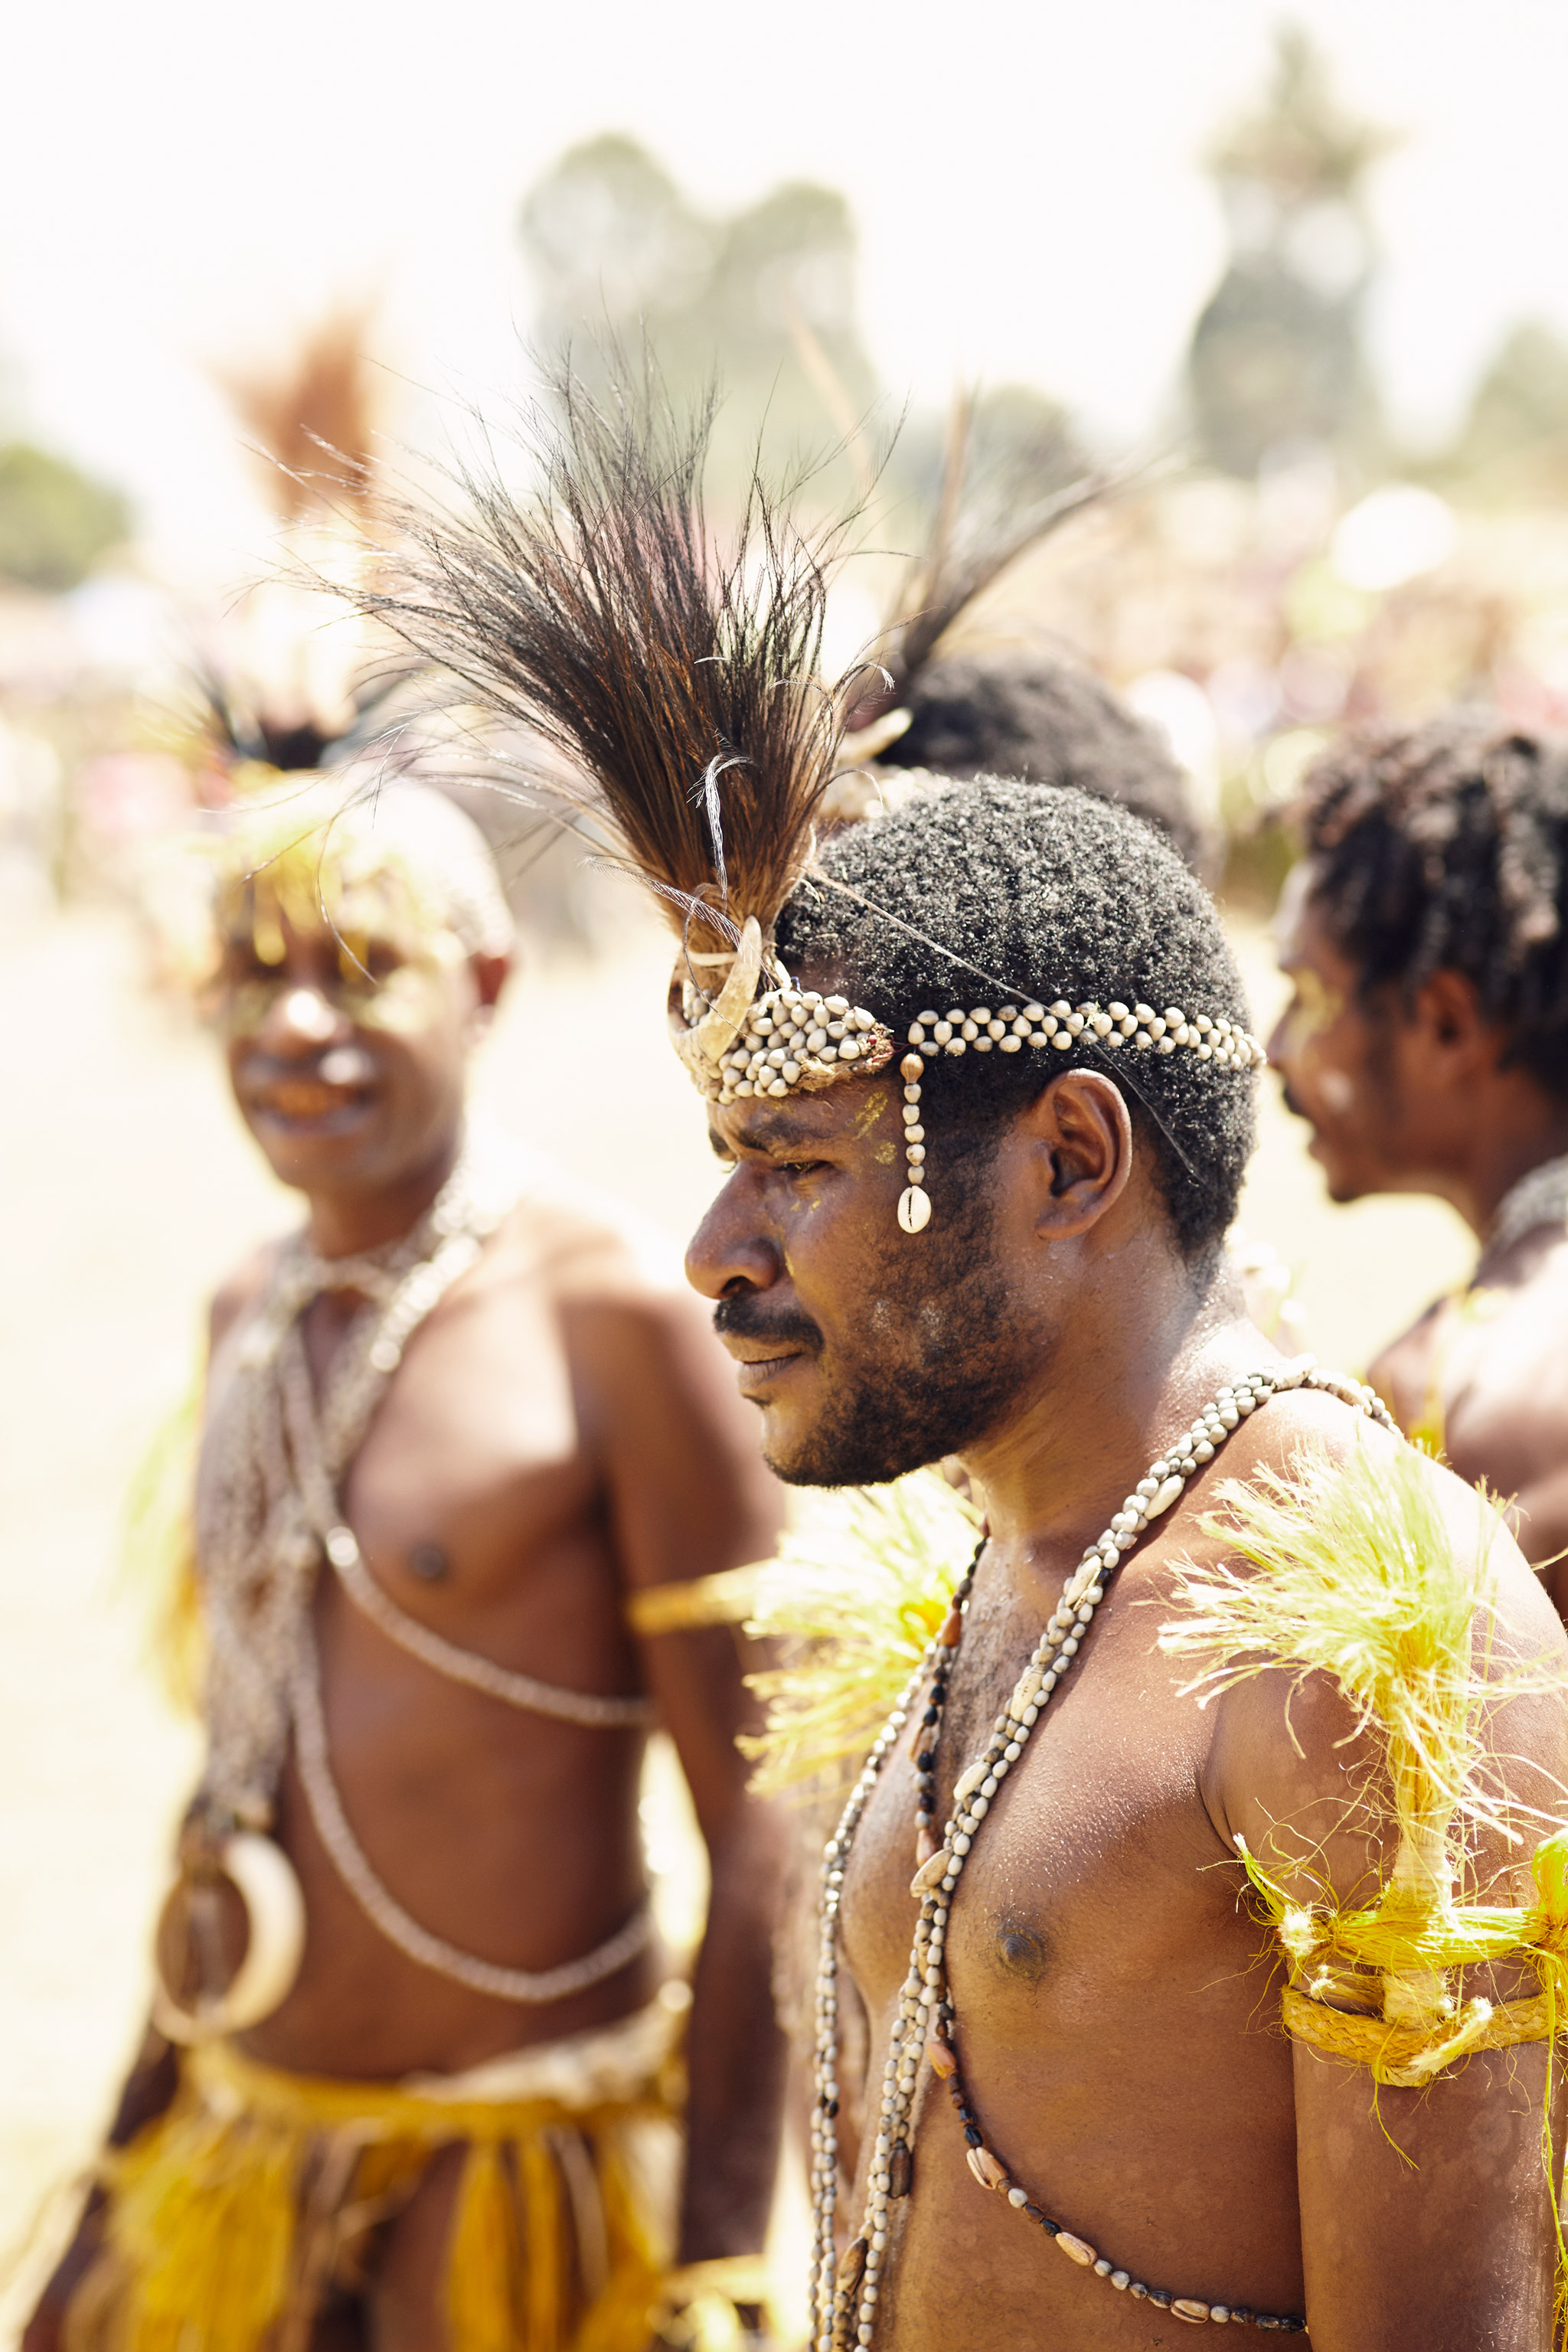 BUKAWA YOUNG WARRIOR IN PAPUA NEW GUINEA